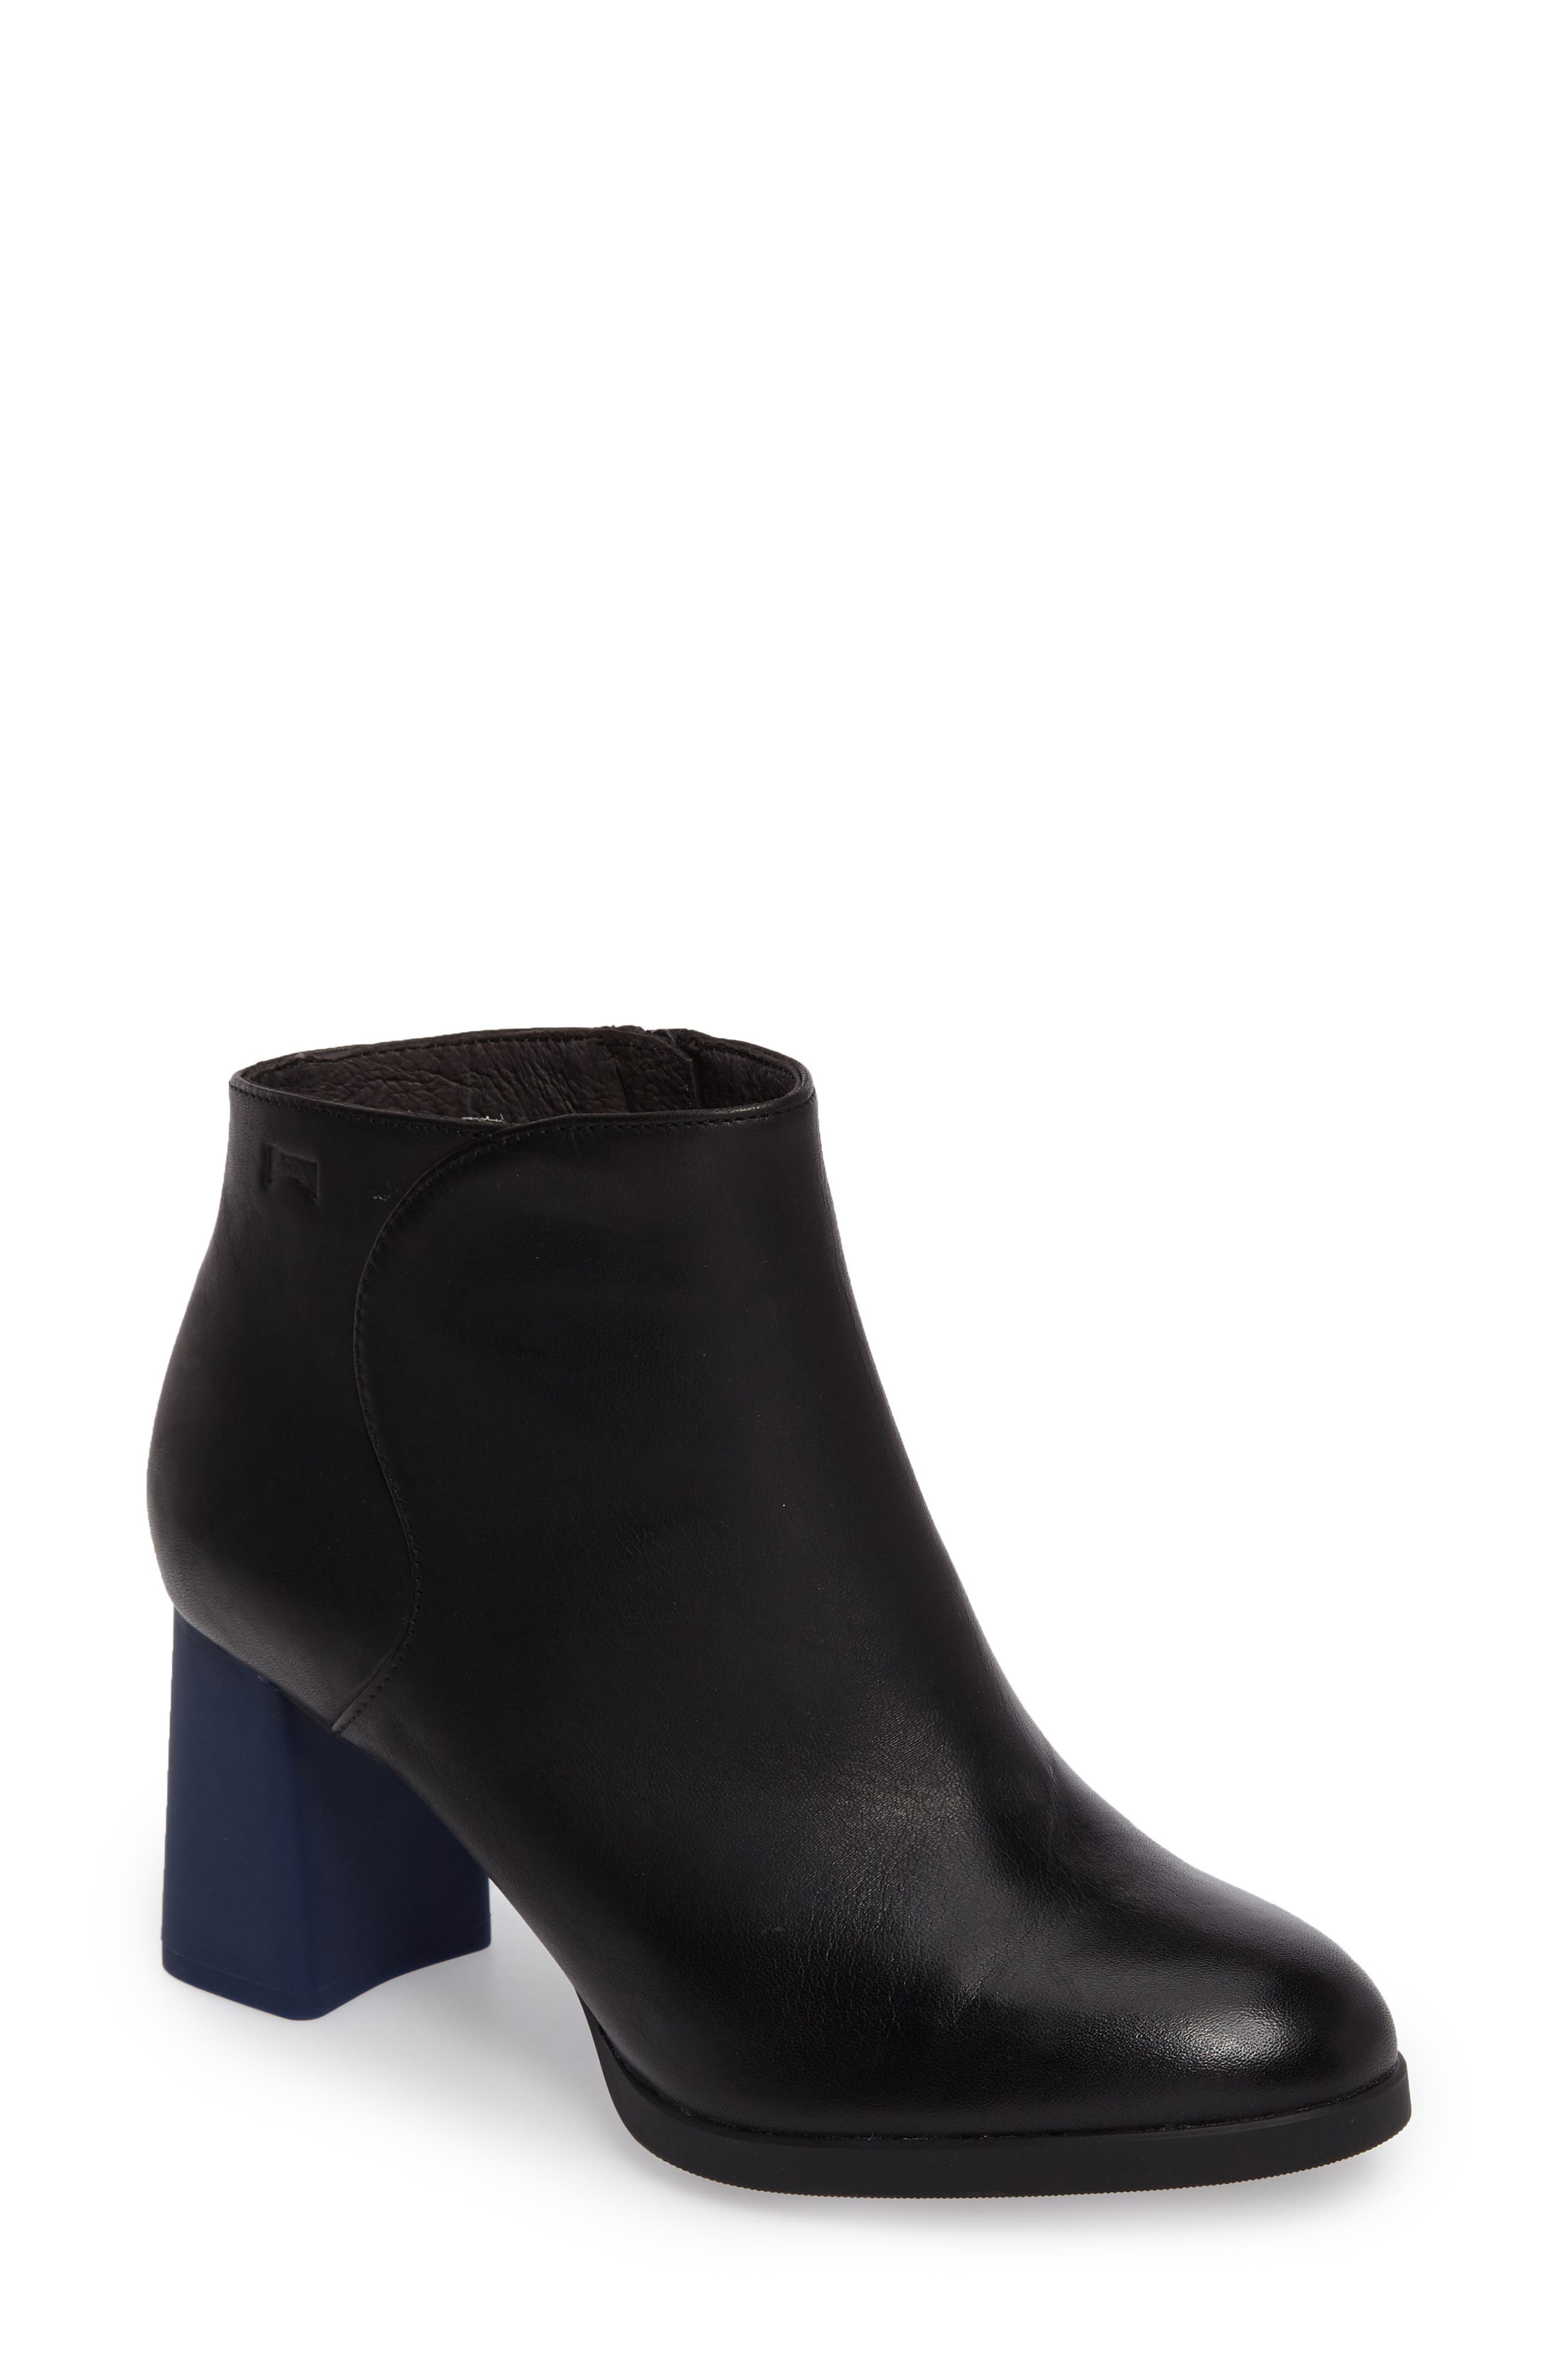 Kara Flared Heel Bootie,                         Main,                         color, 001